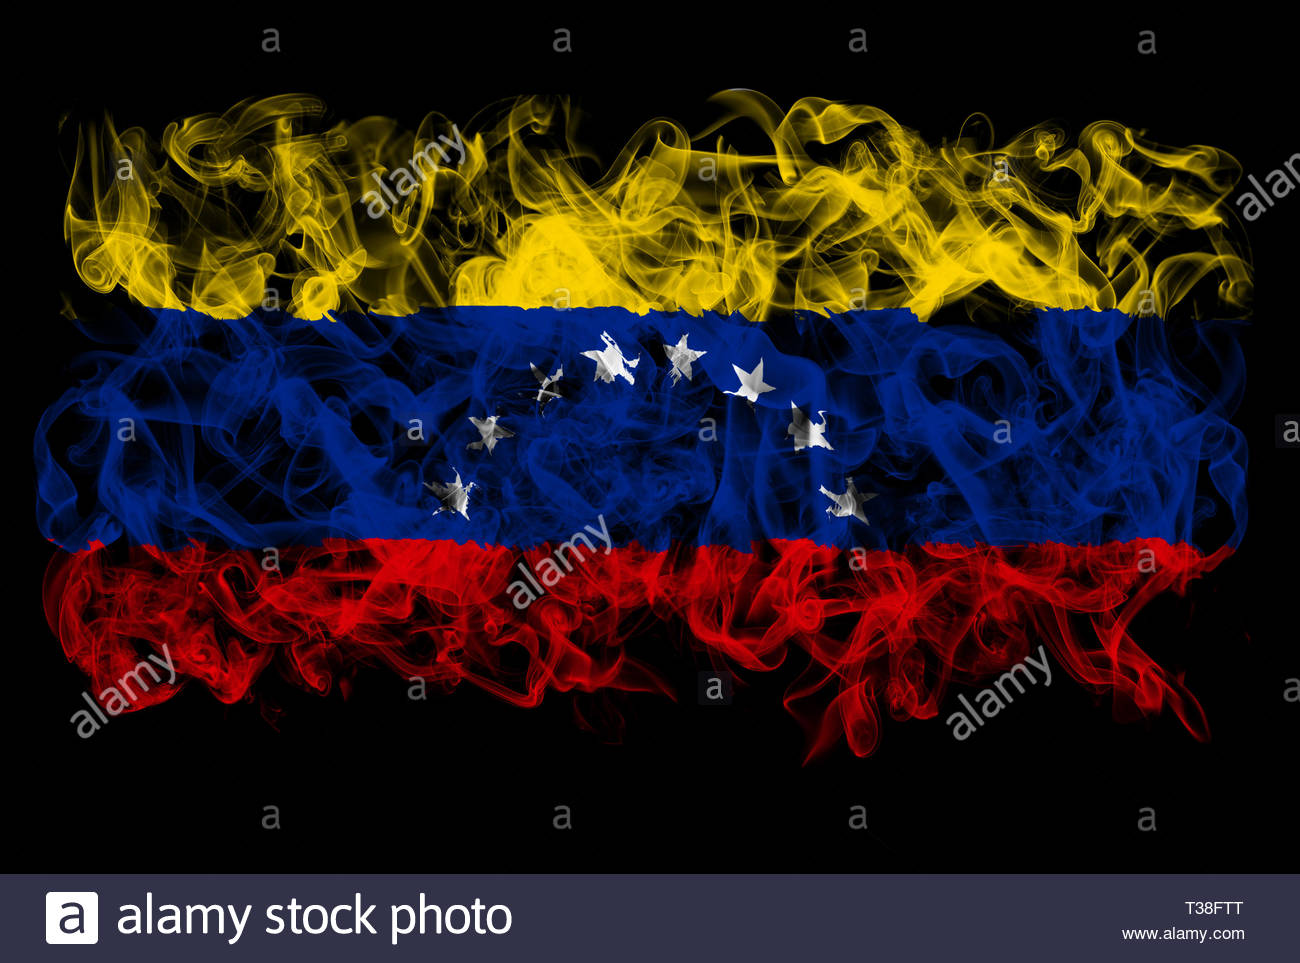 Smoking flag of Venezuela - Stock Image